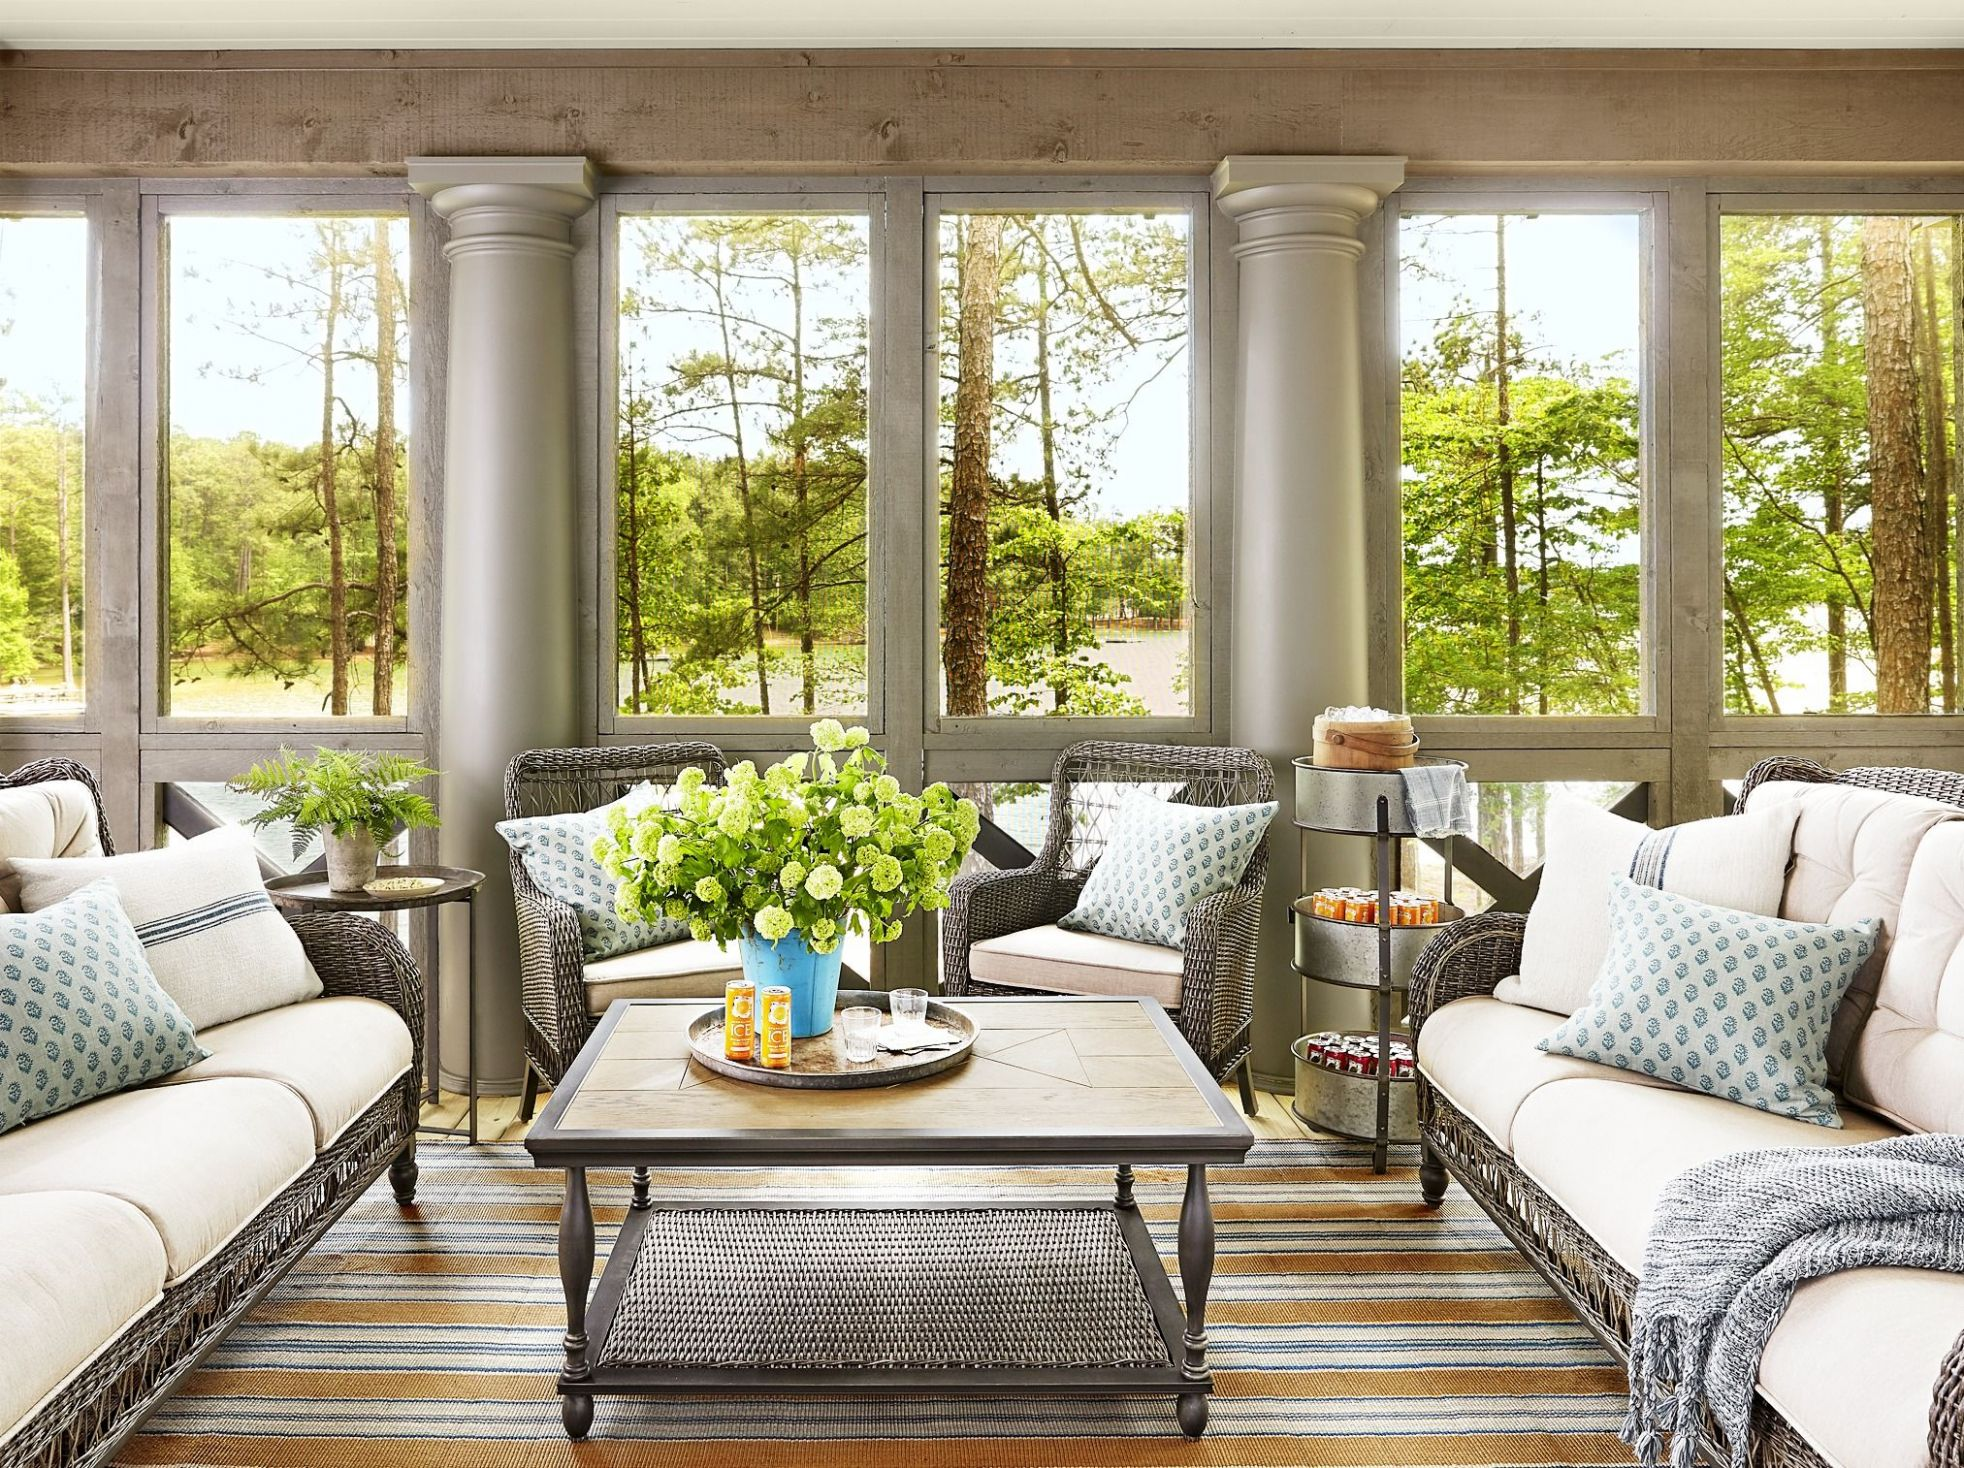 9 Sunroom Decorating Ideas - Best Designs for Sun Rooms - sunroom rustic ideas